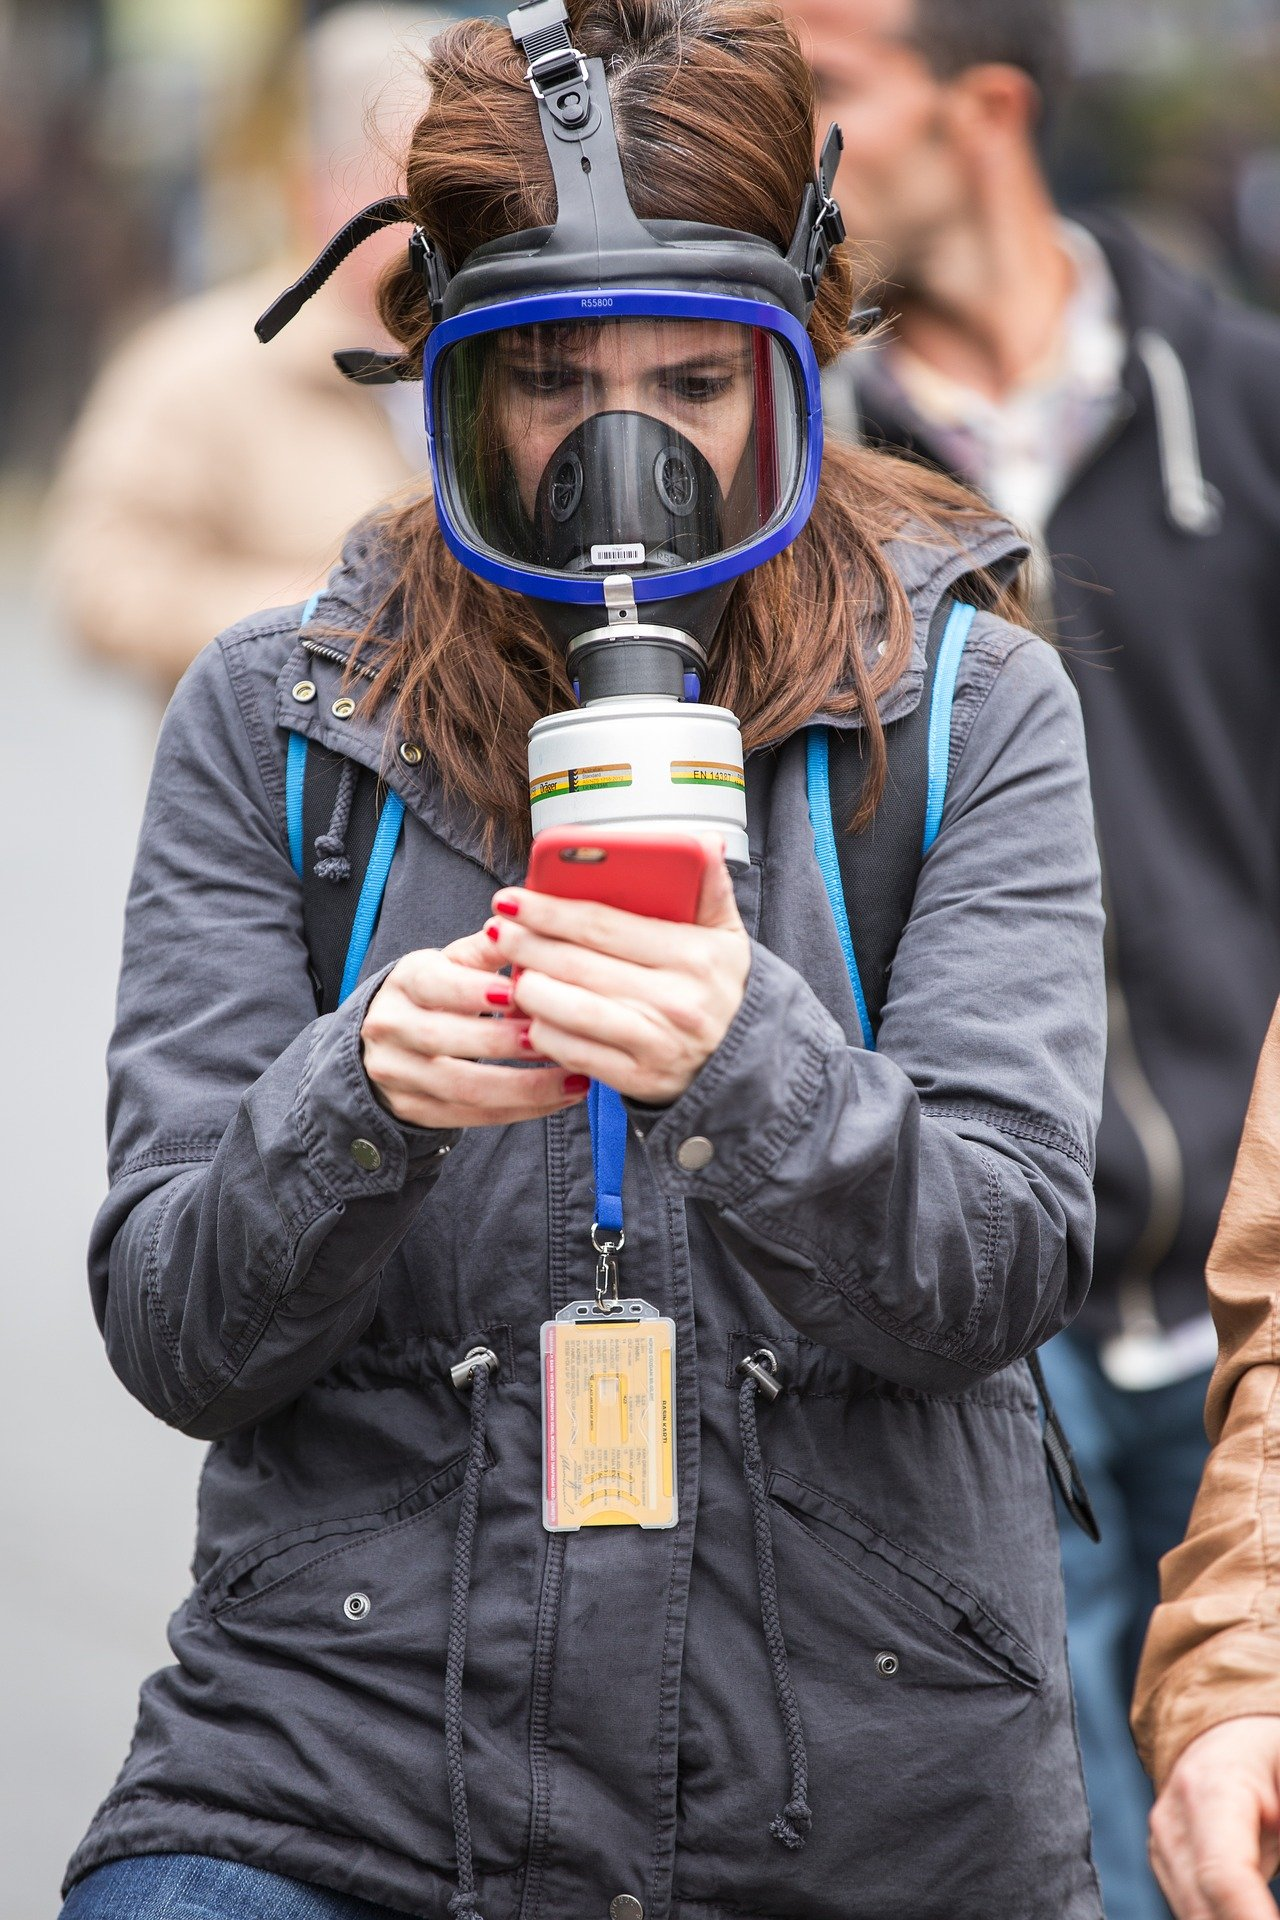 A photo of a woman in a gas mask.